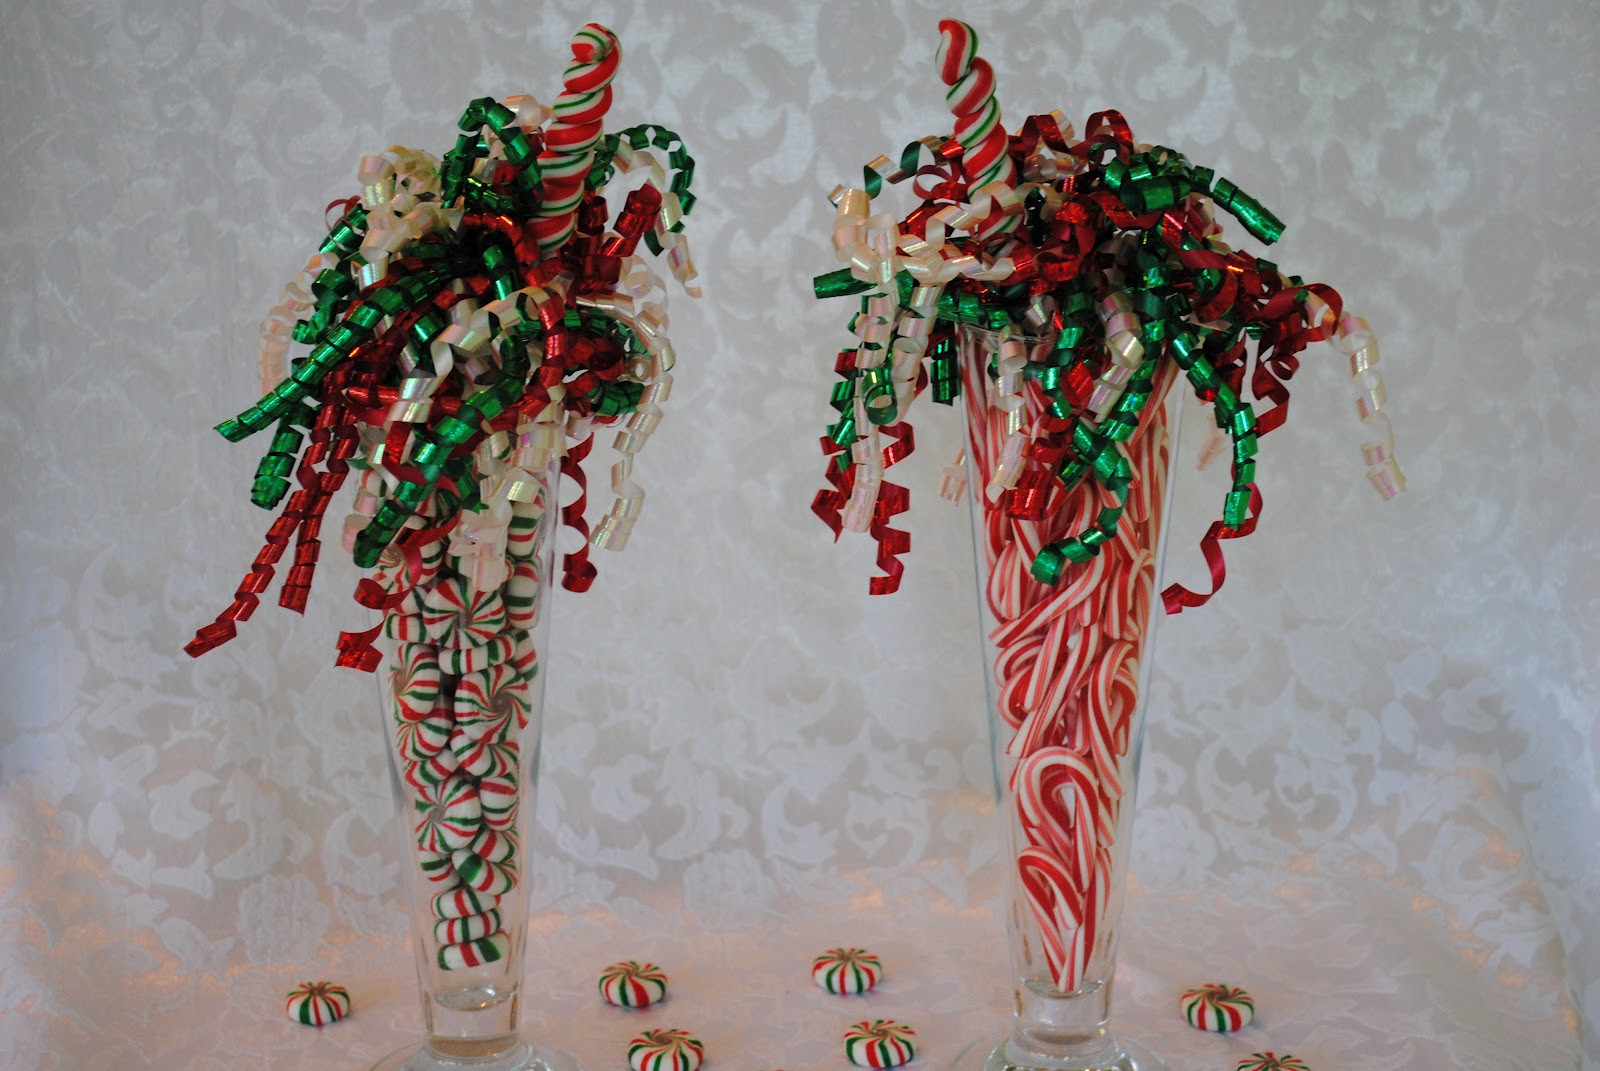 Christmas Candy Gift Ideas  Christmas Holiday Ideas SWEET GIFTS TO GIVE CANDY SUNDAES